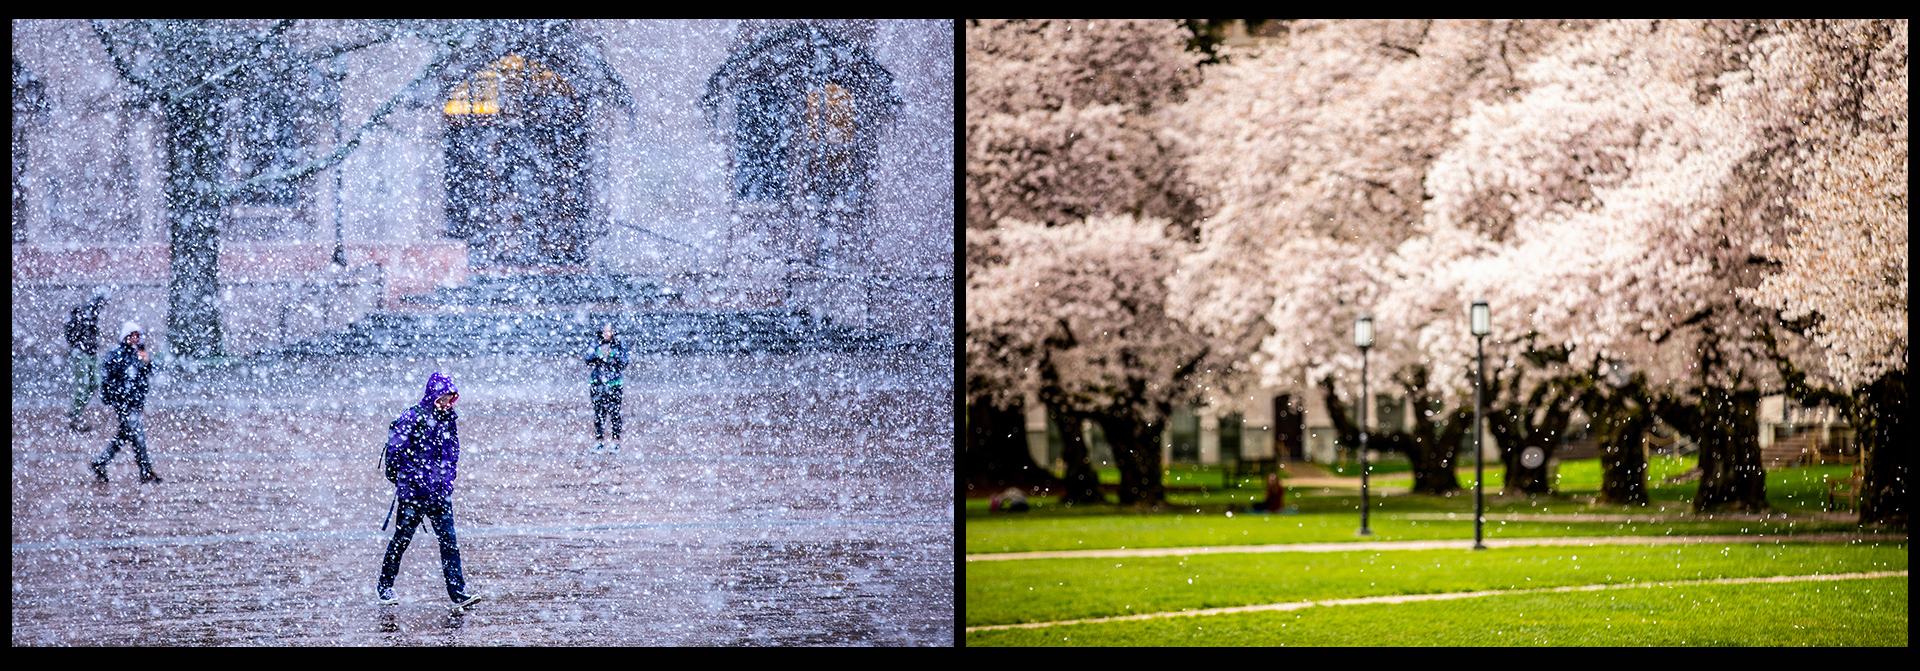 Campus Snow and Cherry blossoms